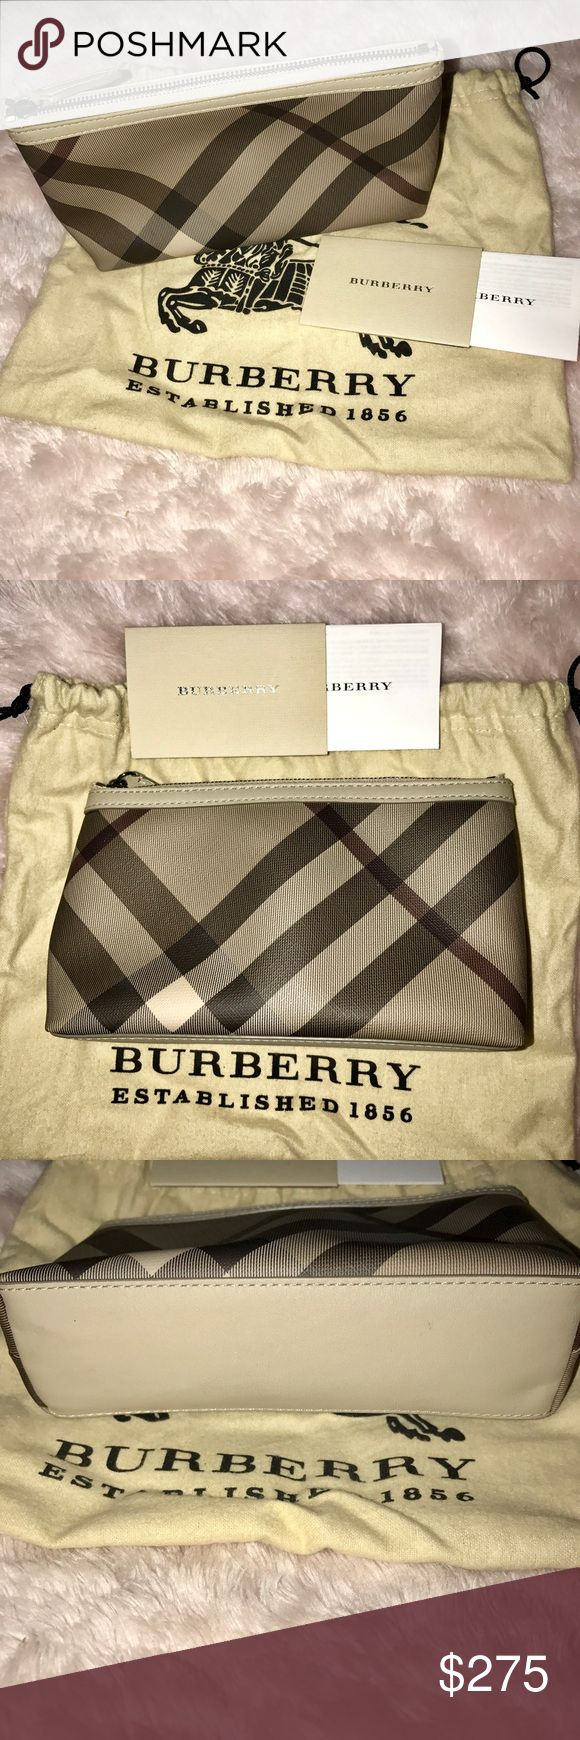 New Burberry Makeup Bag New with tags. Burberry classic plaid print  zippered makeup bag. Comes with original tags, & dust over. Burberry Bags Cosmetic Bags & Cases